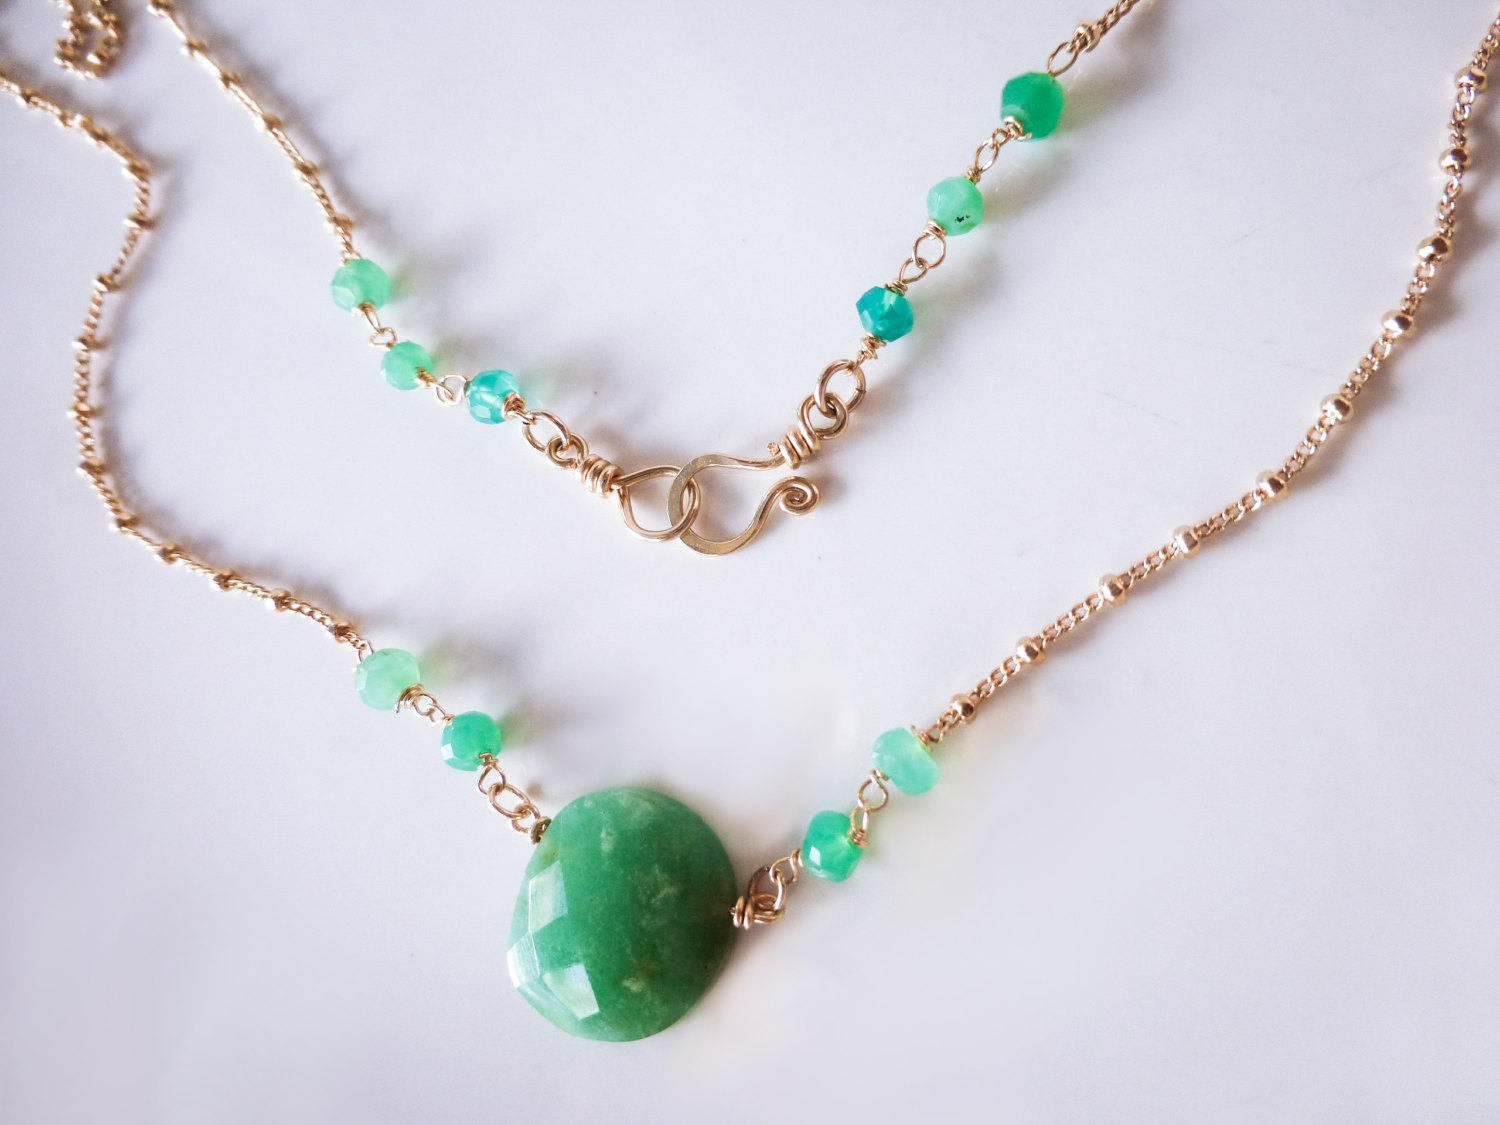 chalcedony jade new and aquamarine chrysoprase products necklace aqua pearl